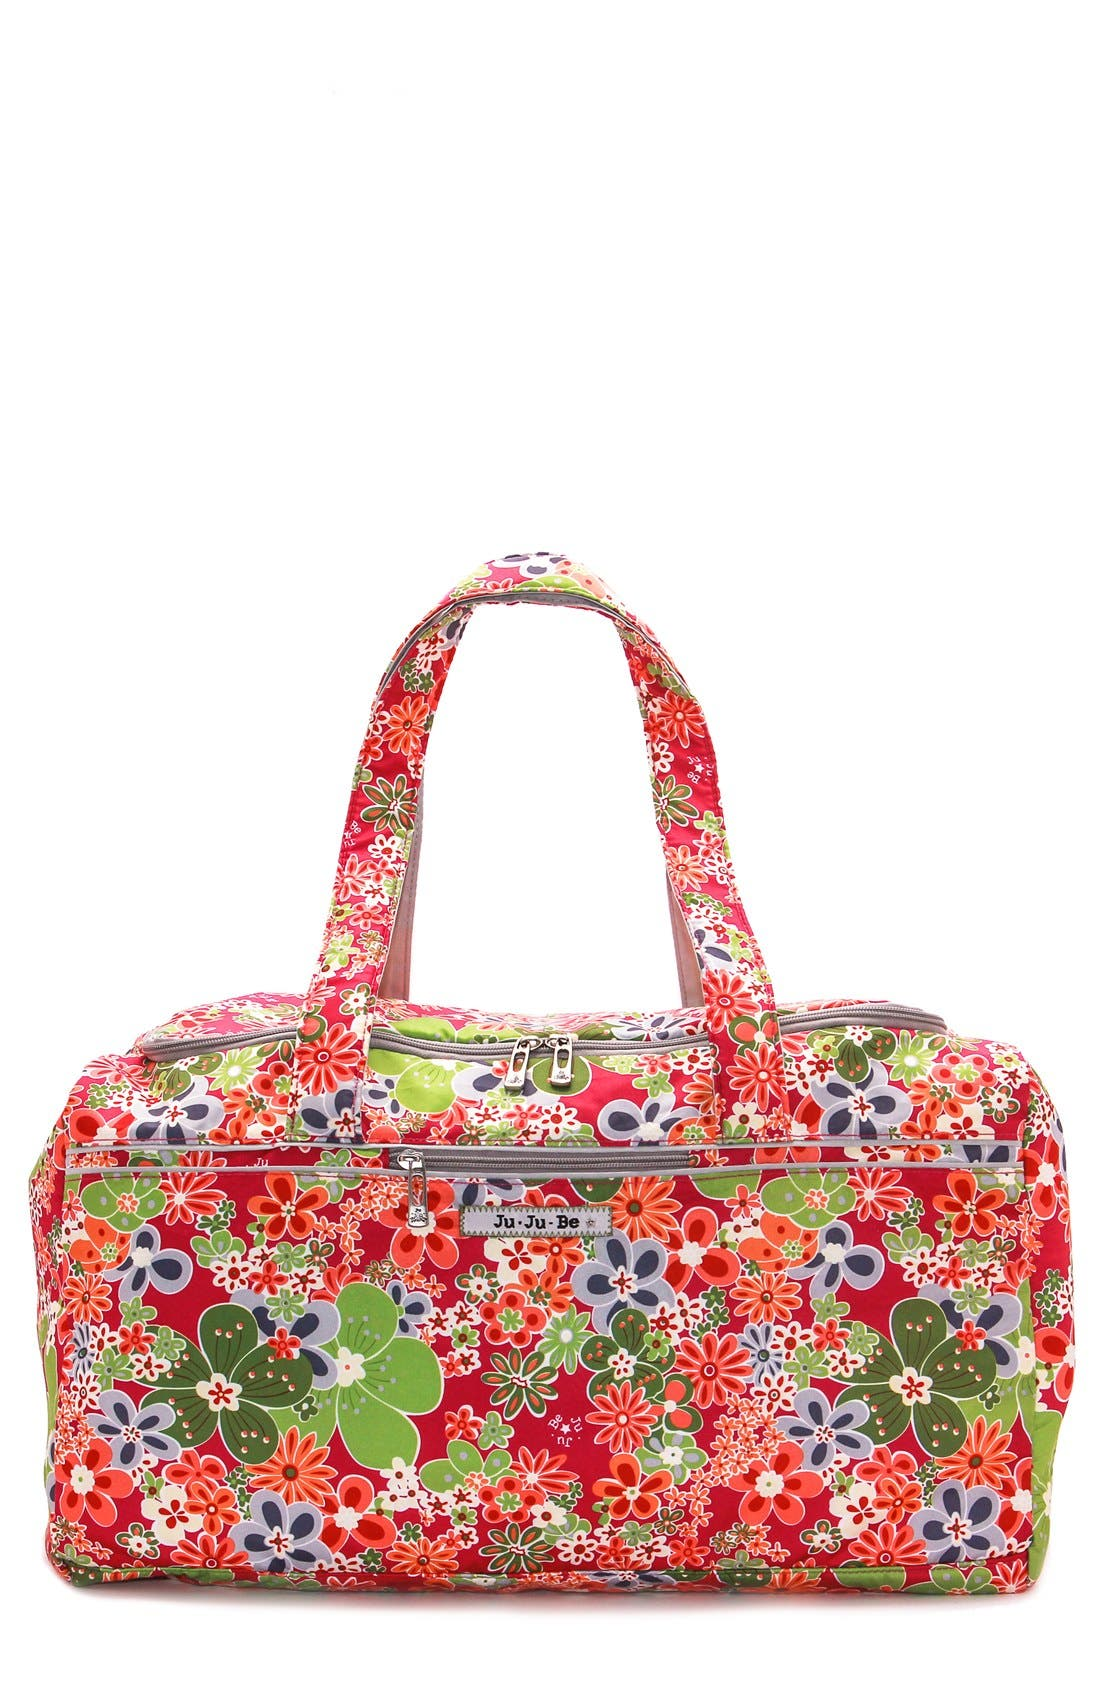 'Starlet' Travel Diaper Bag,                             Main thumbnail 2, color,